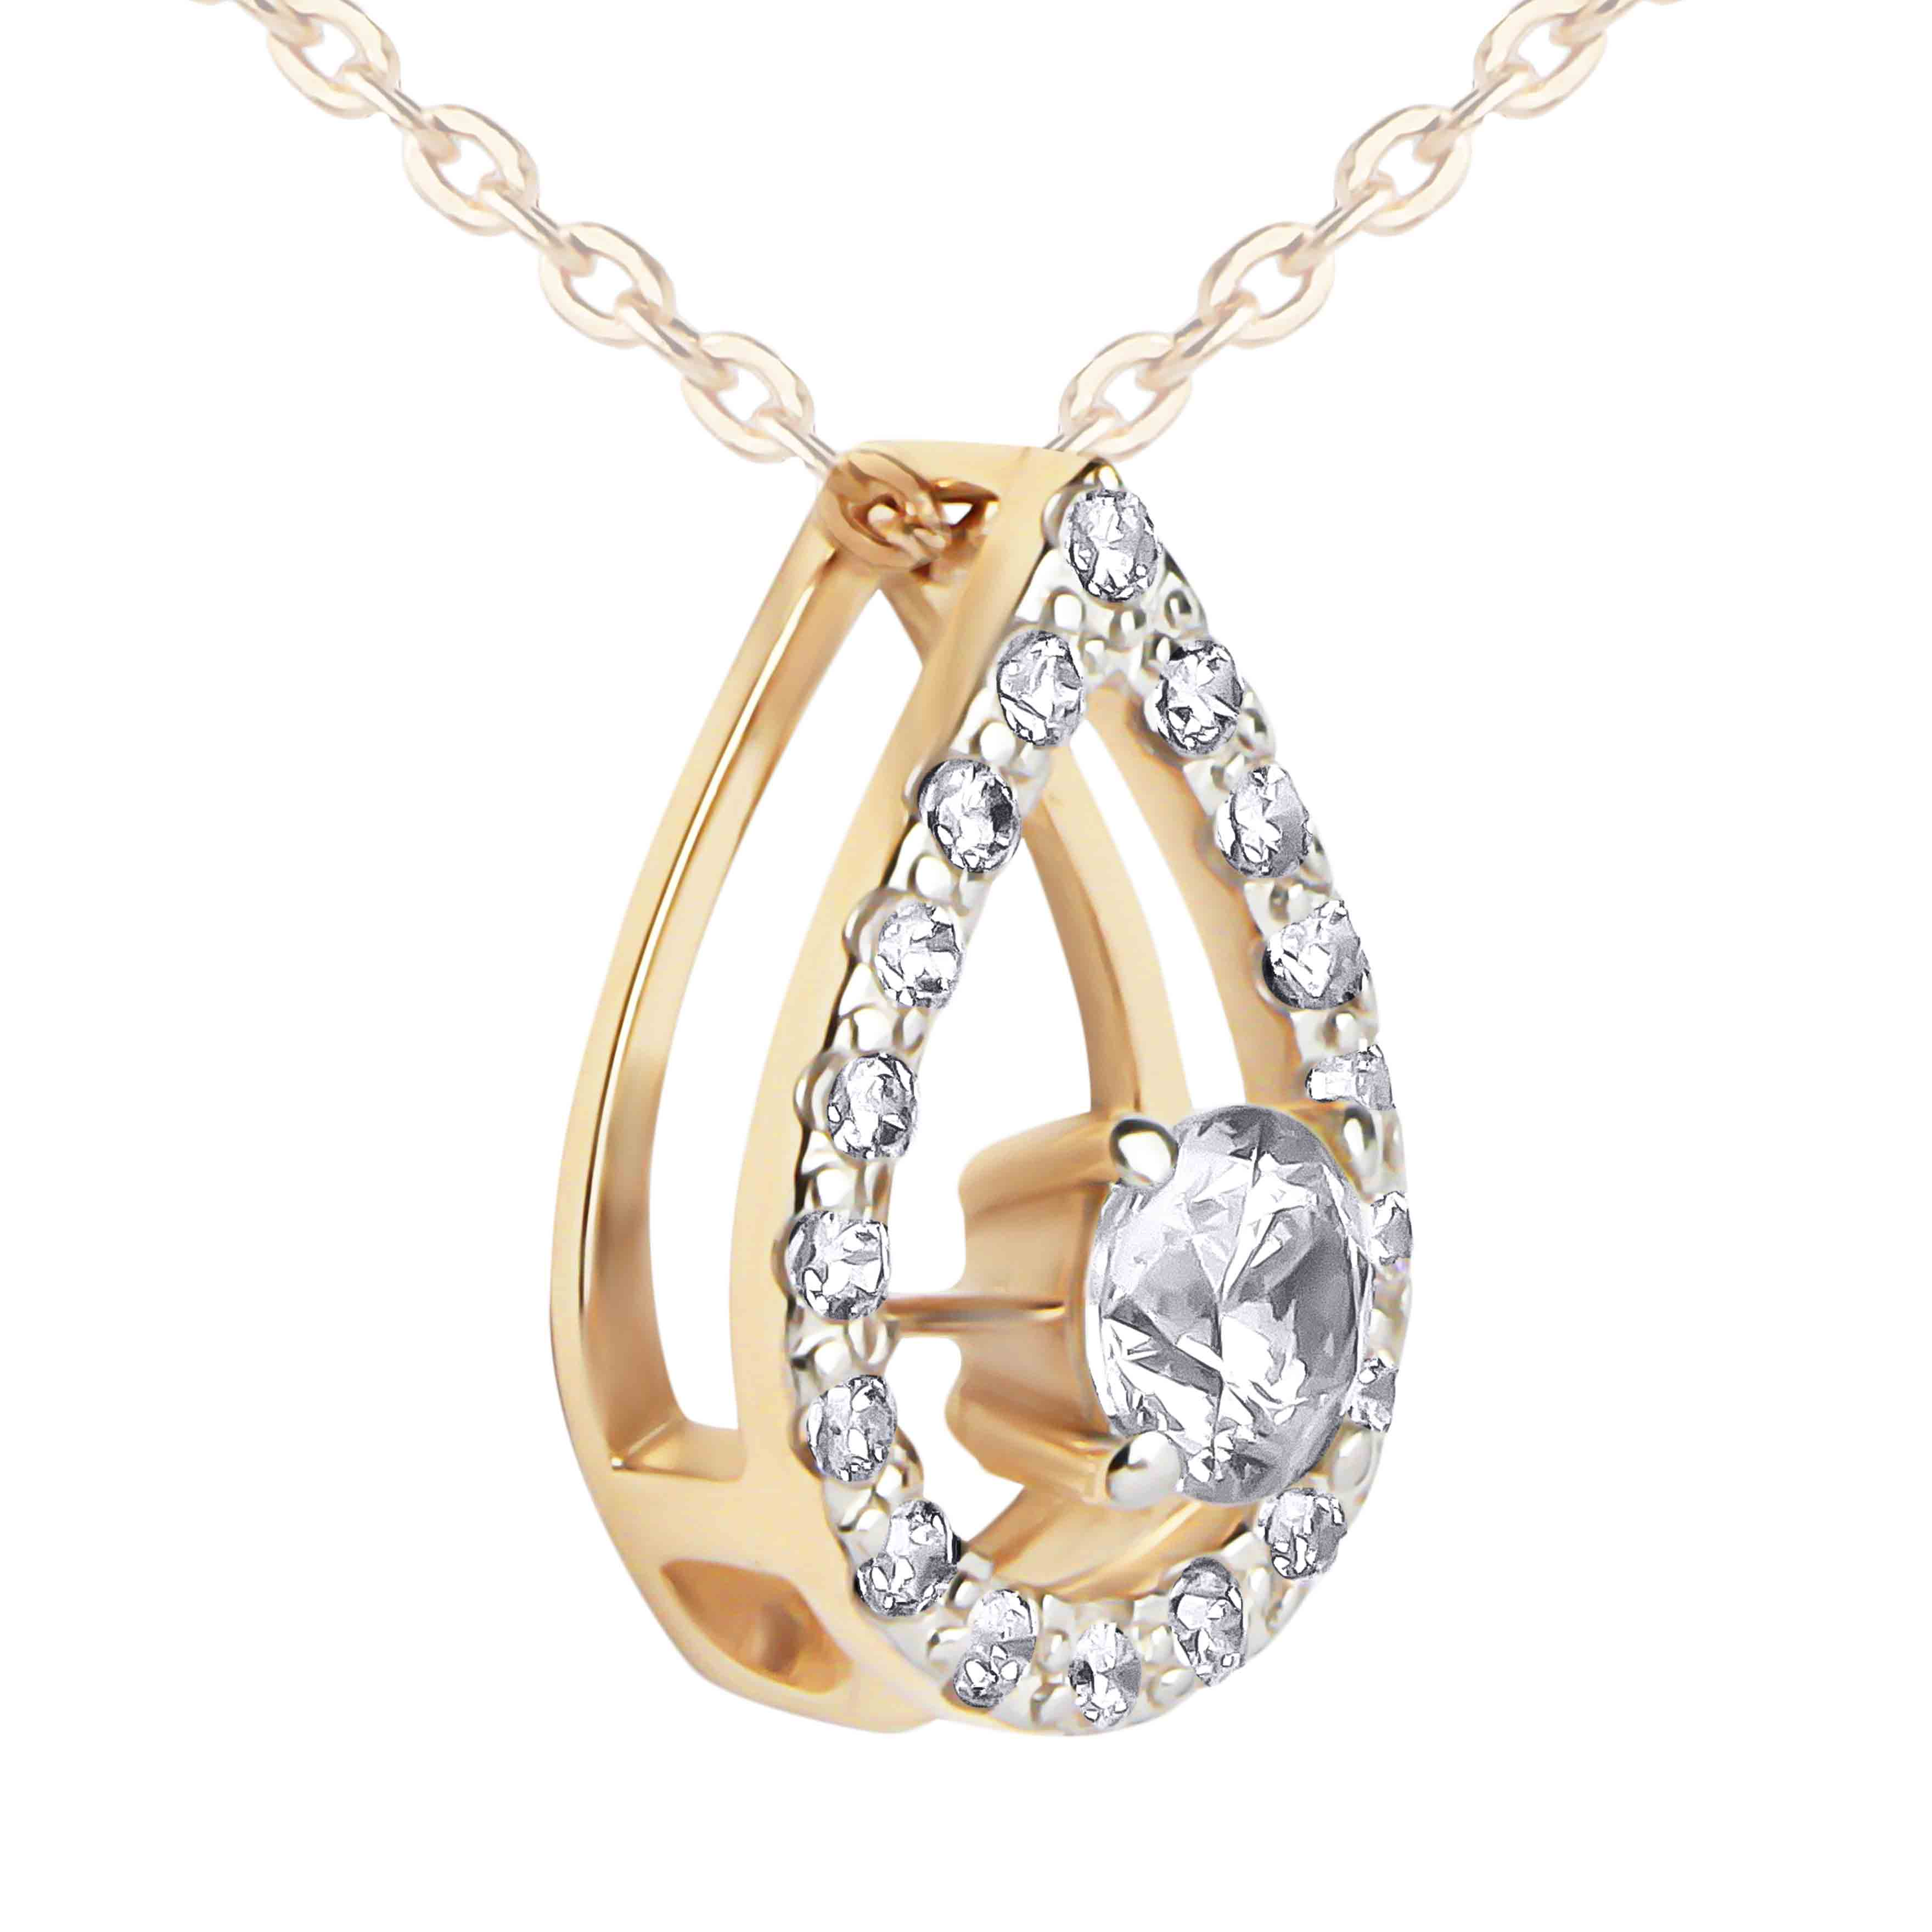 Rose Gold Open Teardrop Slide Pendant with Swarovski CZ. View 2